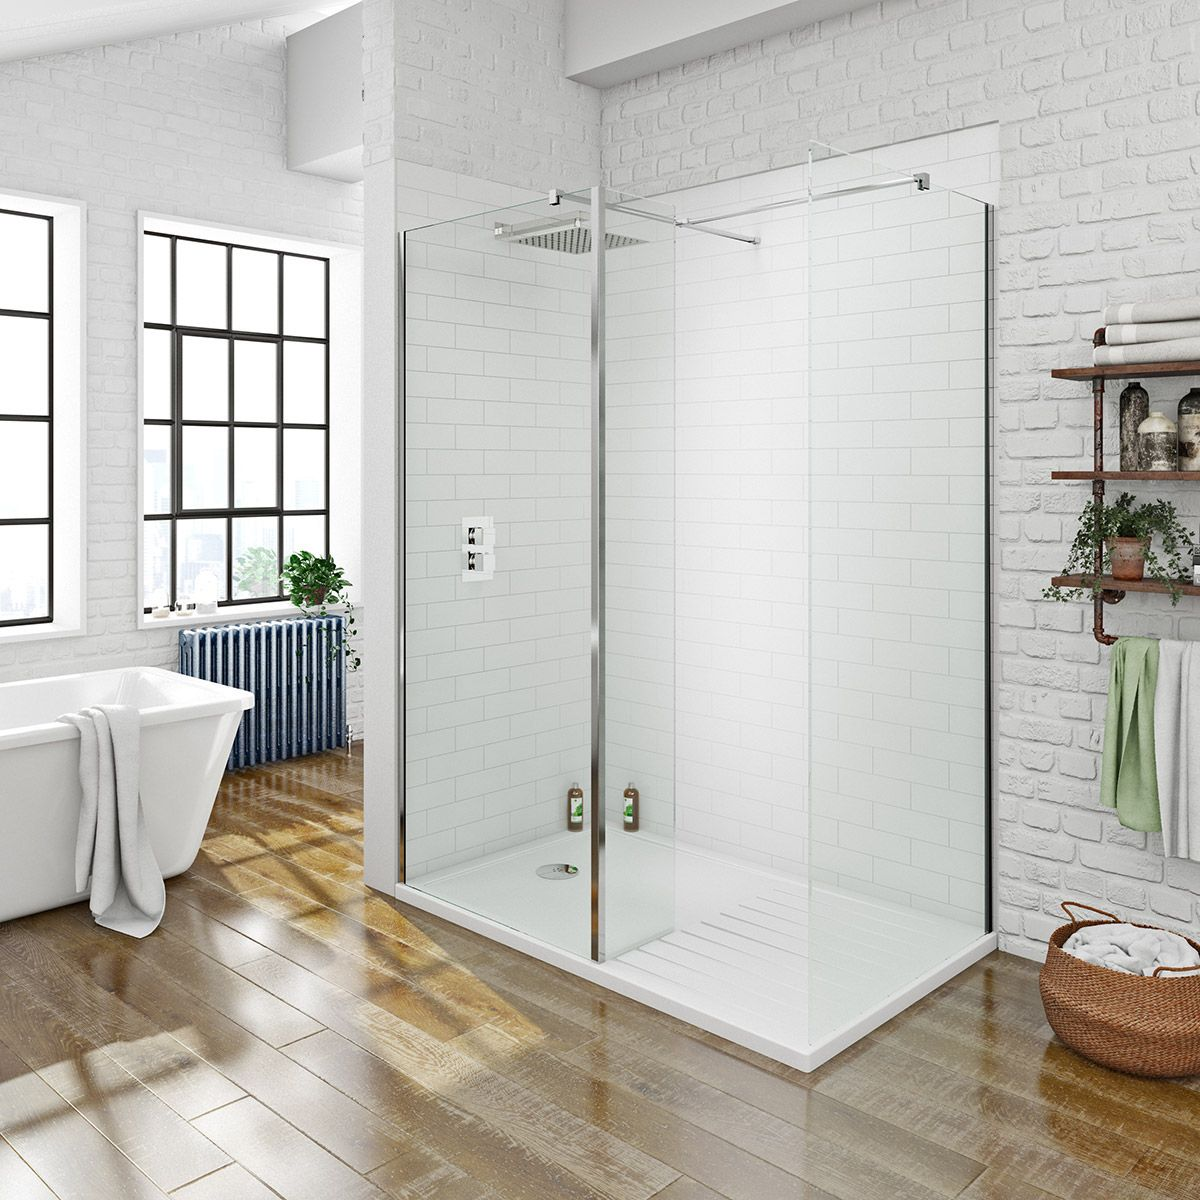 Mode luxury 8mm walk in shower enclosure pack with shower tray ...